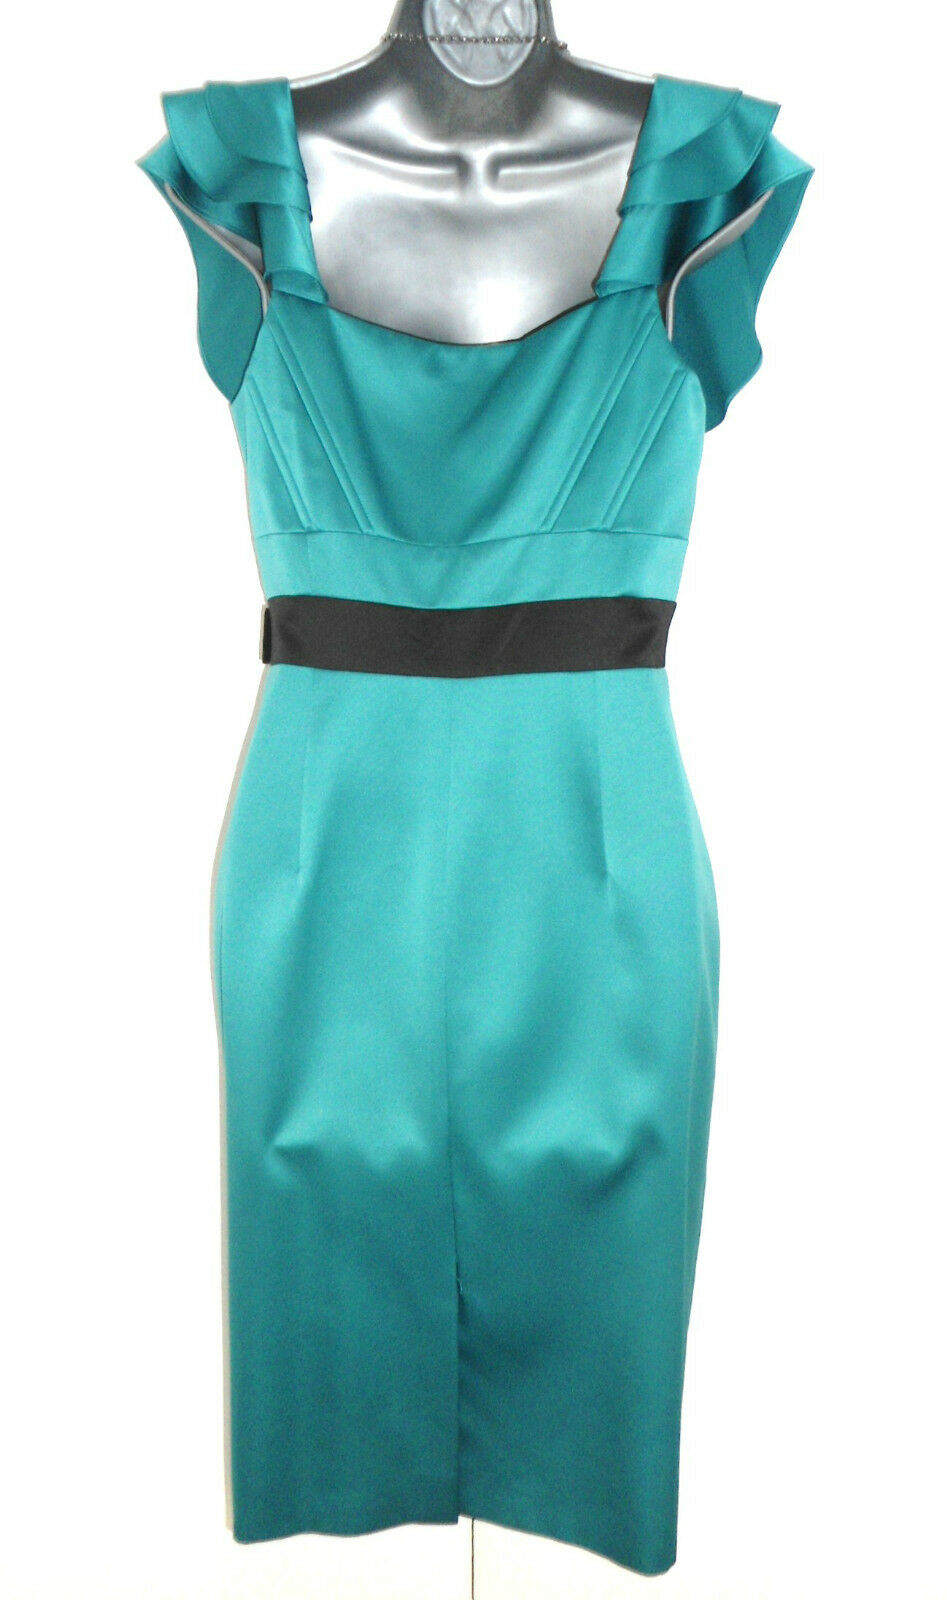 Stunning Karen Millen Teal Satin Jewelled Embellished Pencil Pencil Pencil Evening Dress 12 ea4737